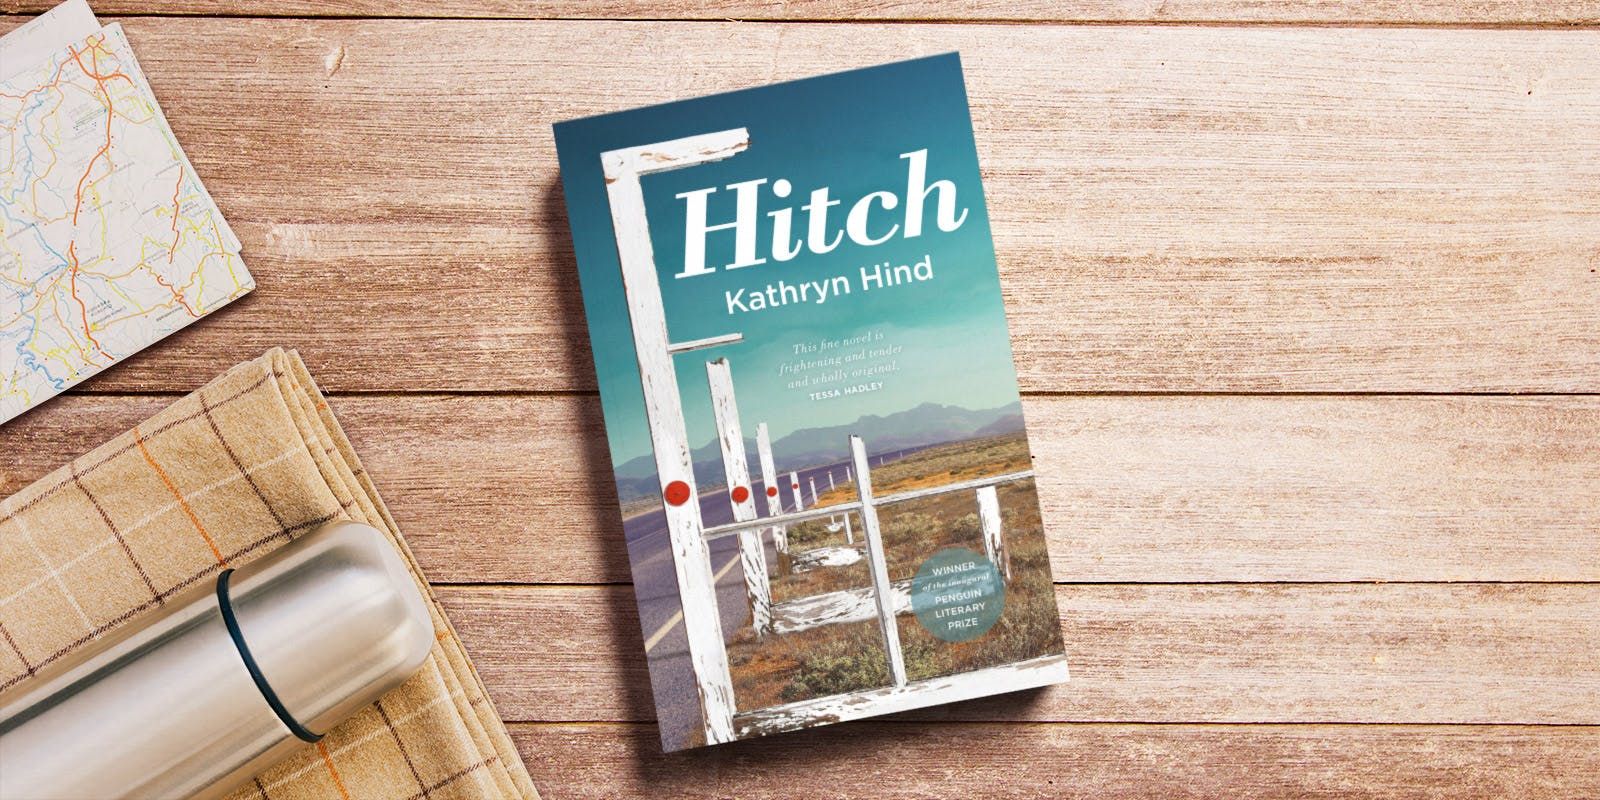 Hitchhiking with Kathryn Hind